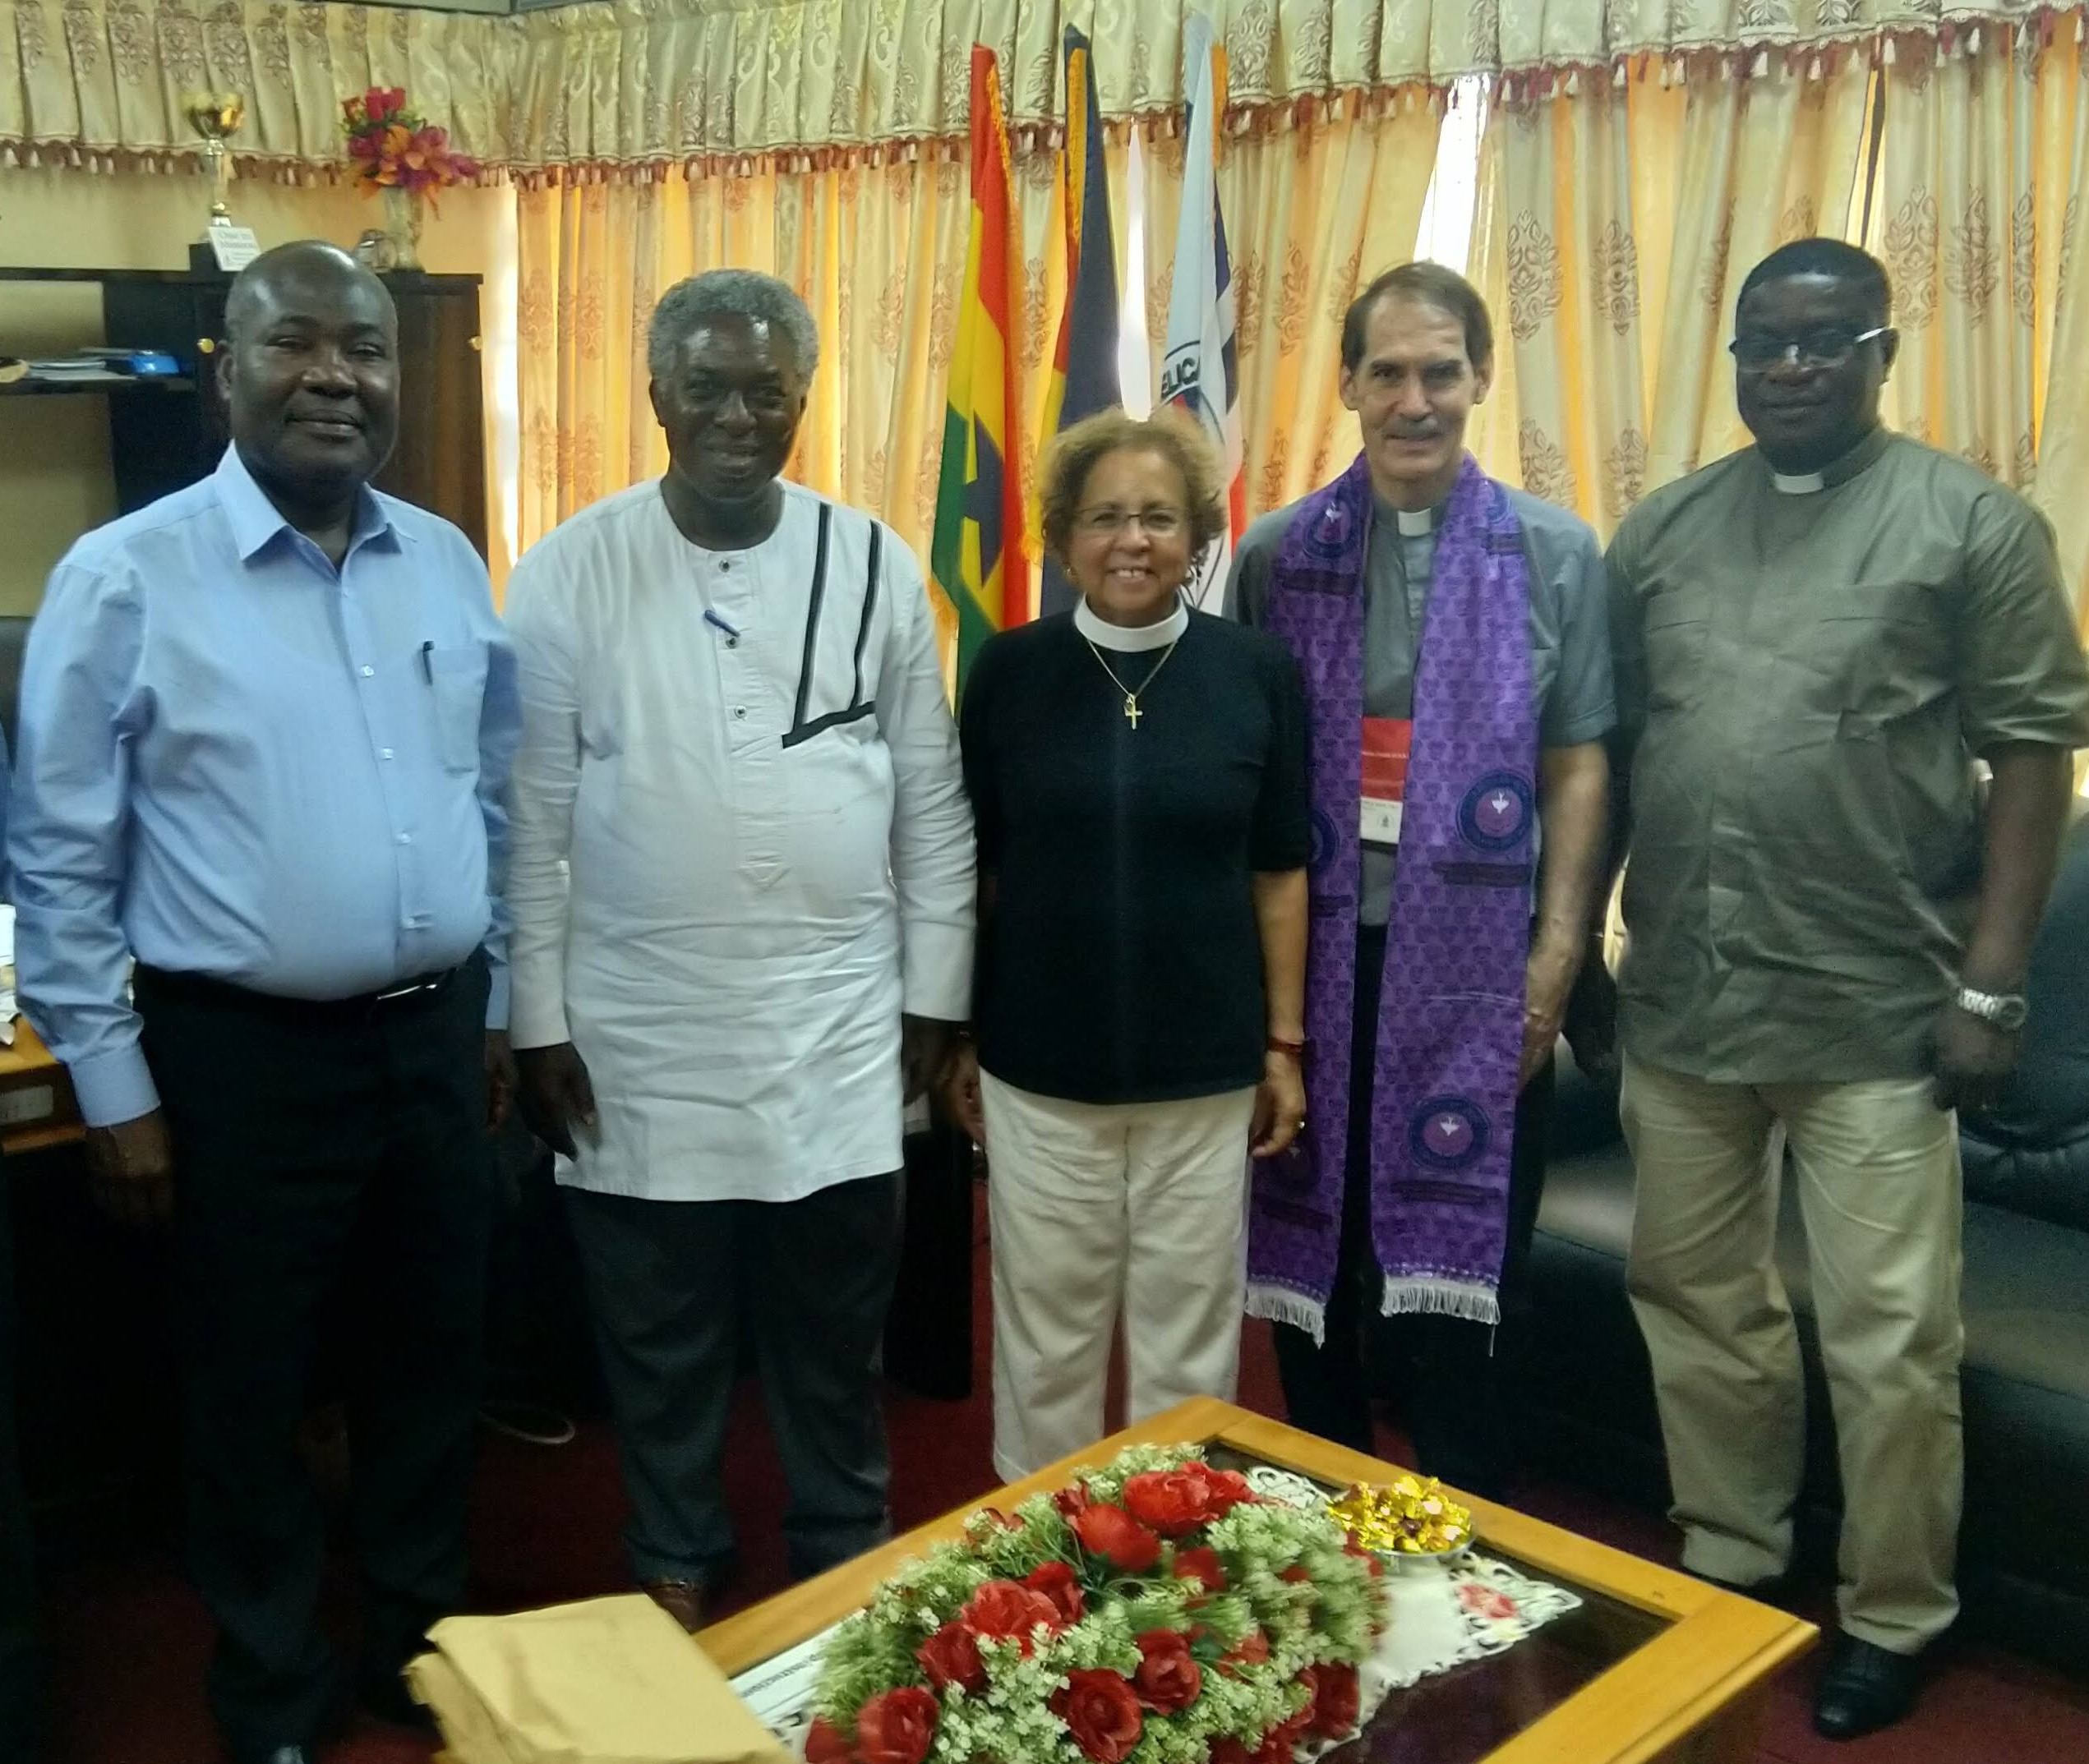 Rev. Yaw Frimpong Manso, former moderator of the Presbyterian Church of Ghana, who now serves a PC(USA) congregation in the Bronx (second from left); Sandy Lane, moderator of the Presbytery of New York City (center); and Rev. Robert Foltz Morrison, executive presbyter of the Presbytery of New York City (second from right) visiting Rev. Emmanuel Amey, clerk of the Evangelical Presbyterian Church in Ghana (far left), and Rev. Ken Djotefe (far right), ecumenical director of the Evangelical Presbyterian Church in Ghana.